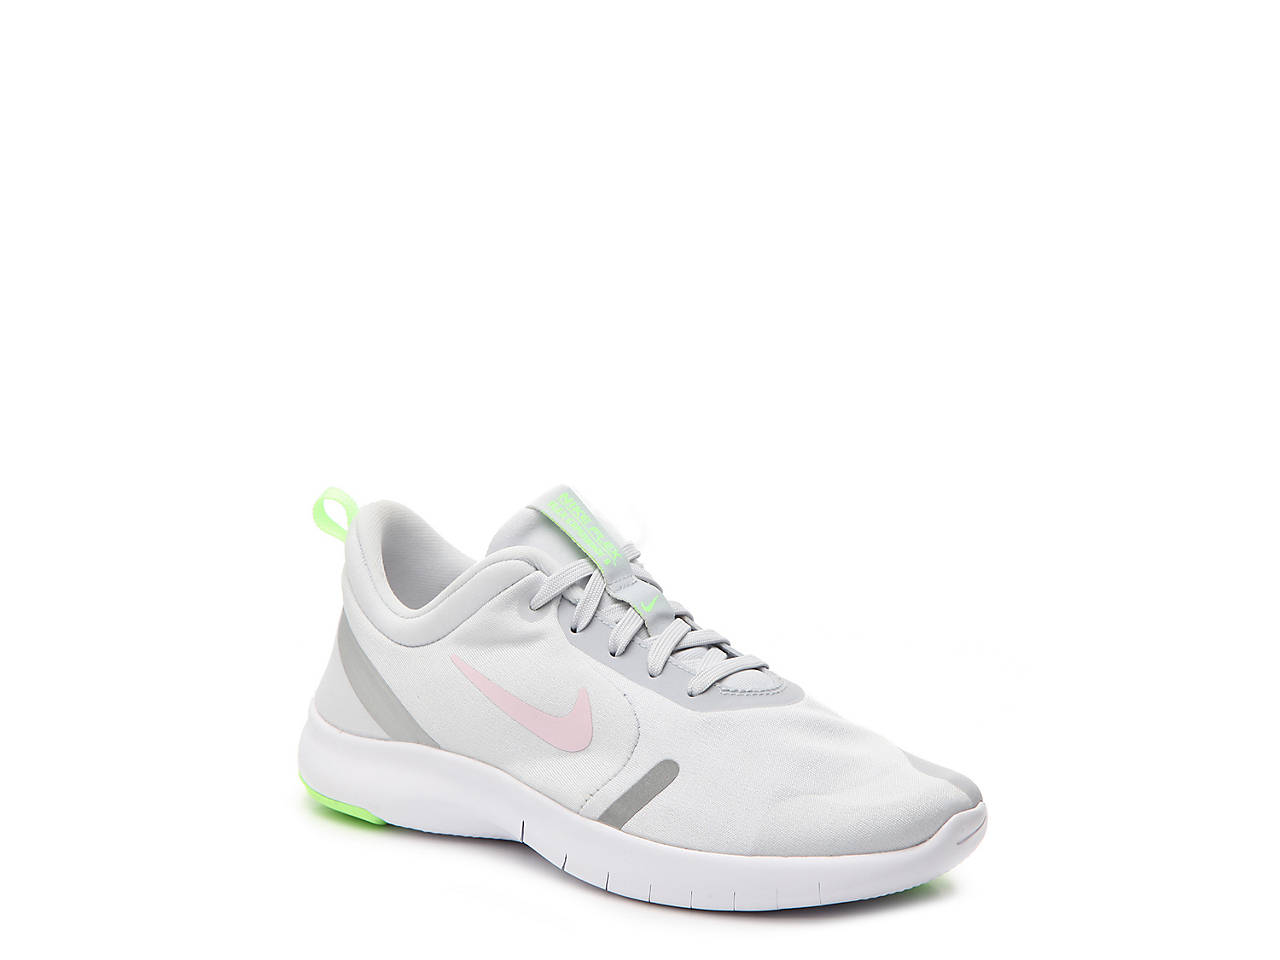 4d53e89be355 Nike Flex Experience RN 8 Youth Running Shoe Kids Shoes